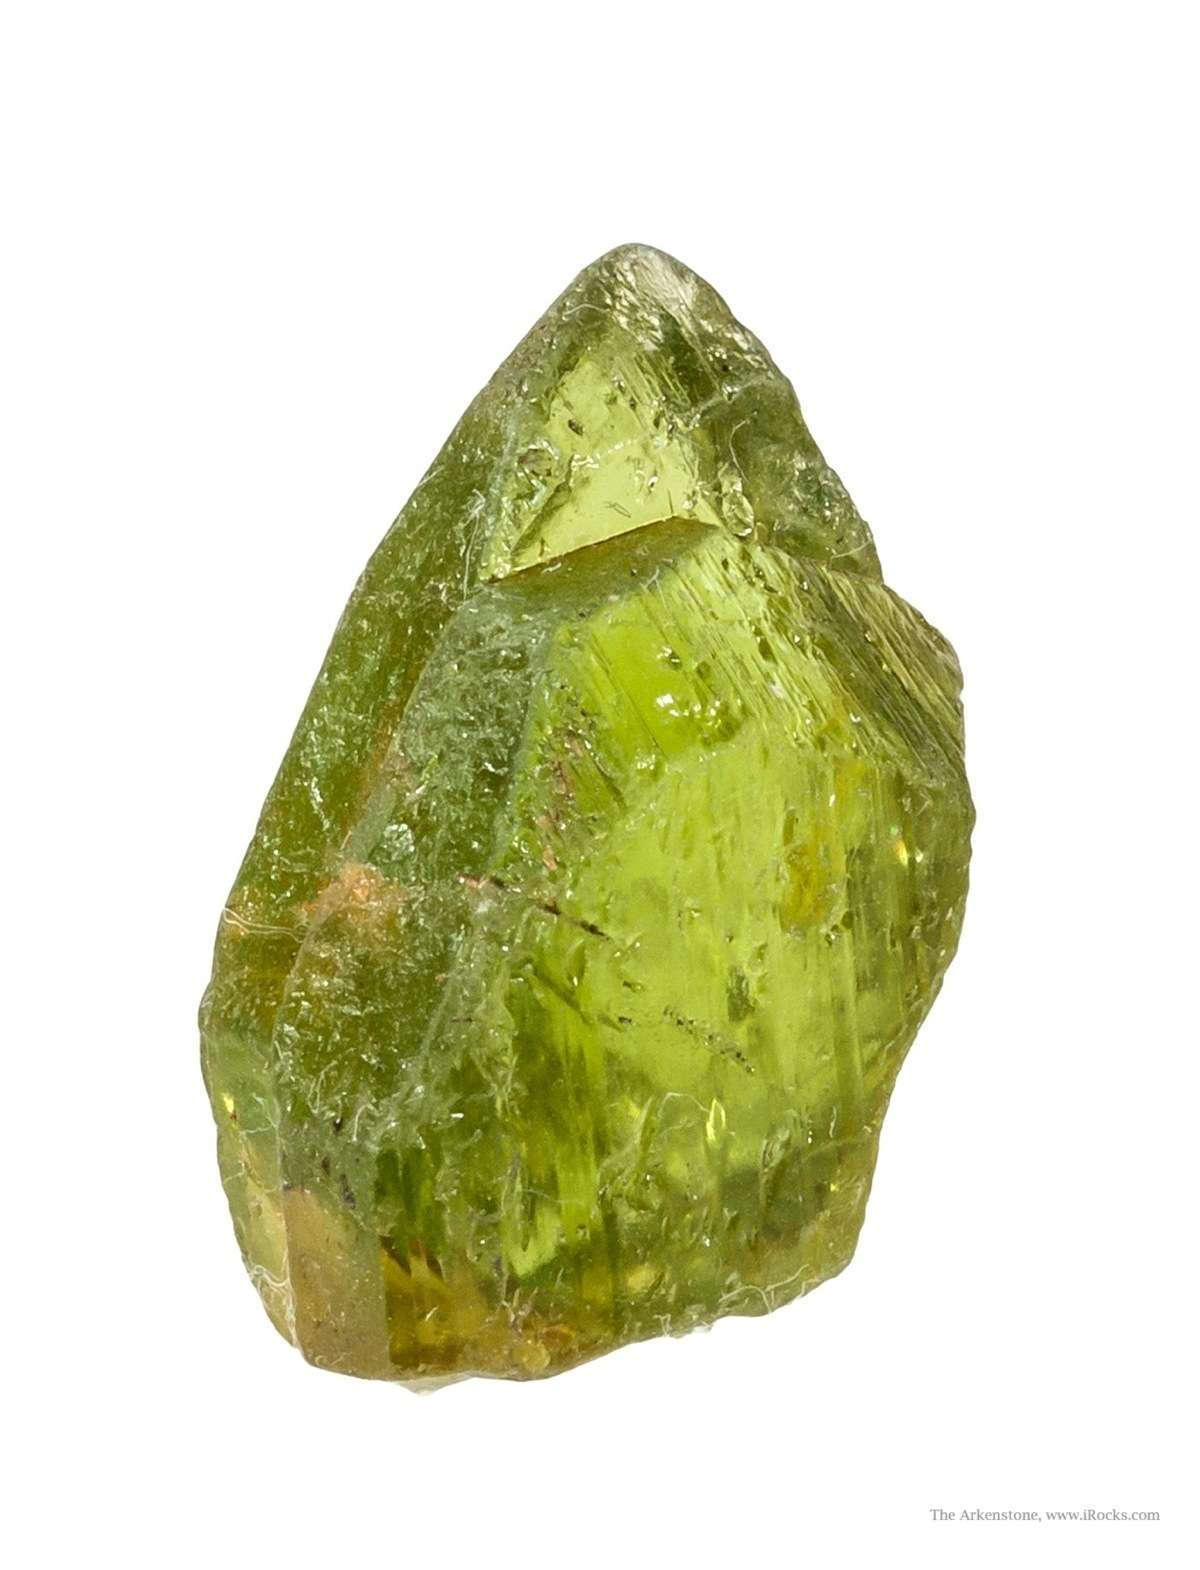 A Rough Guide To Types Of Scientific Evidence: Rough And Cut Lost Peridot